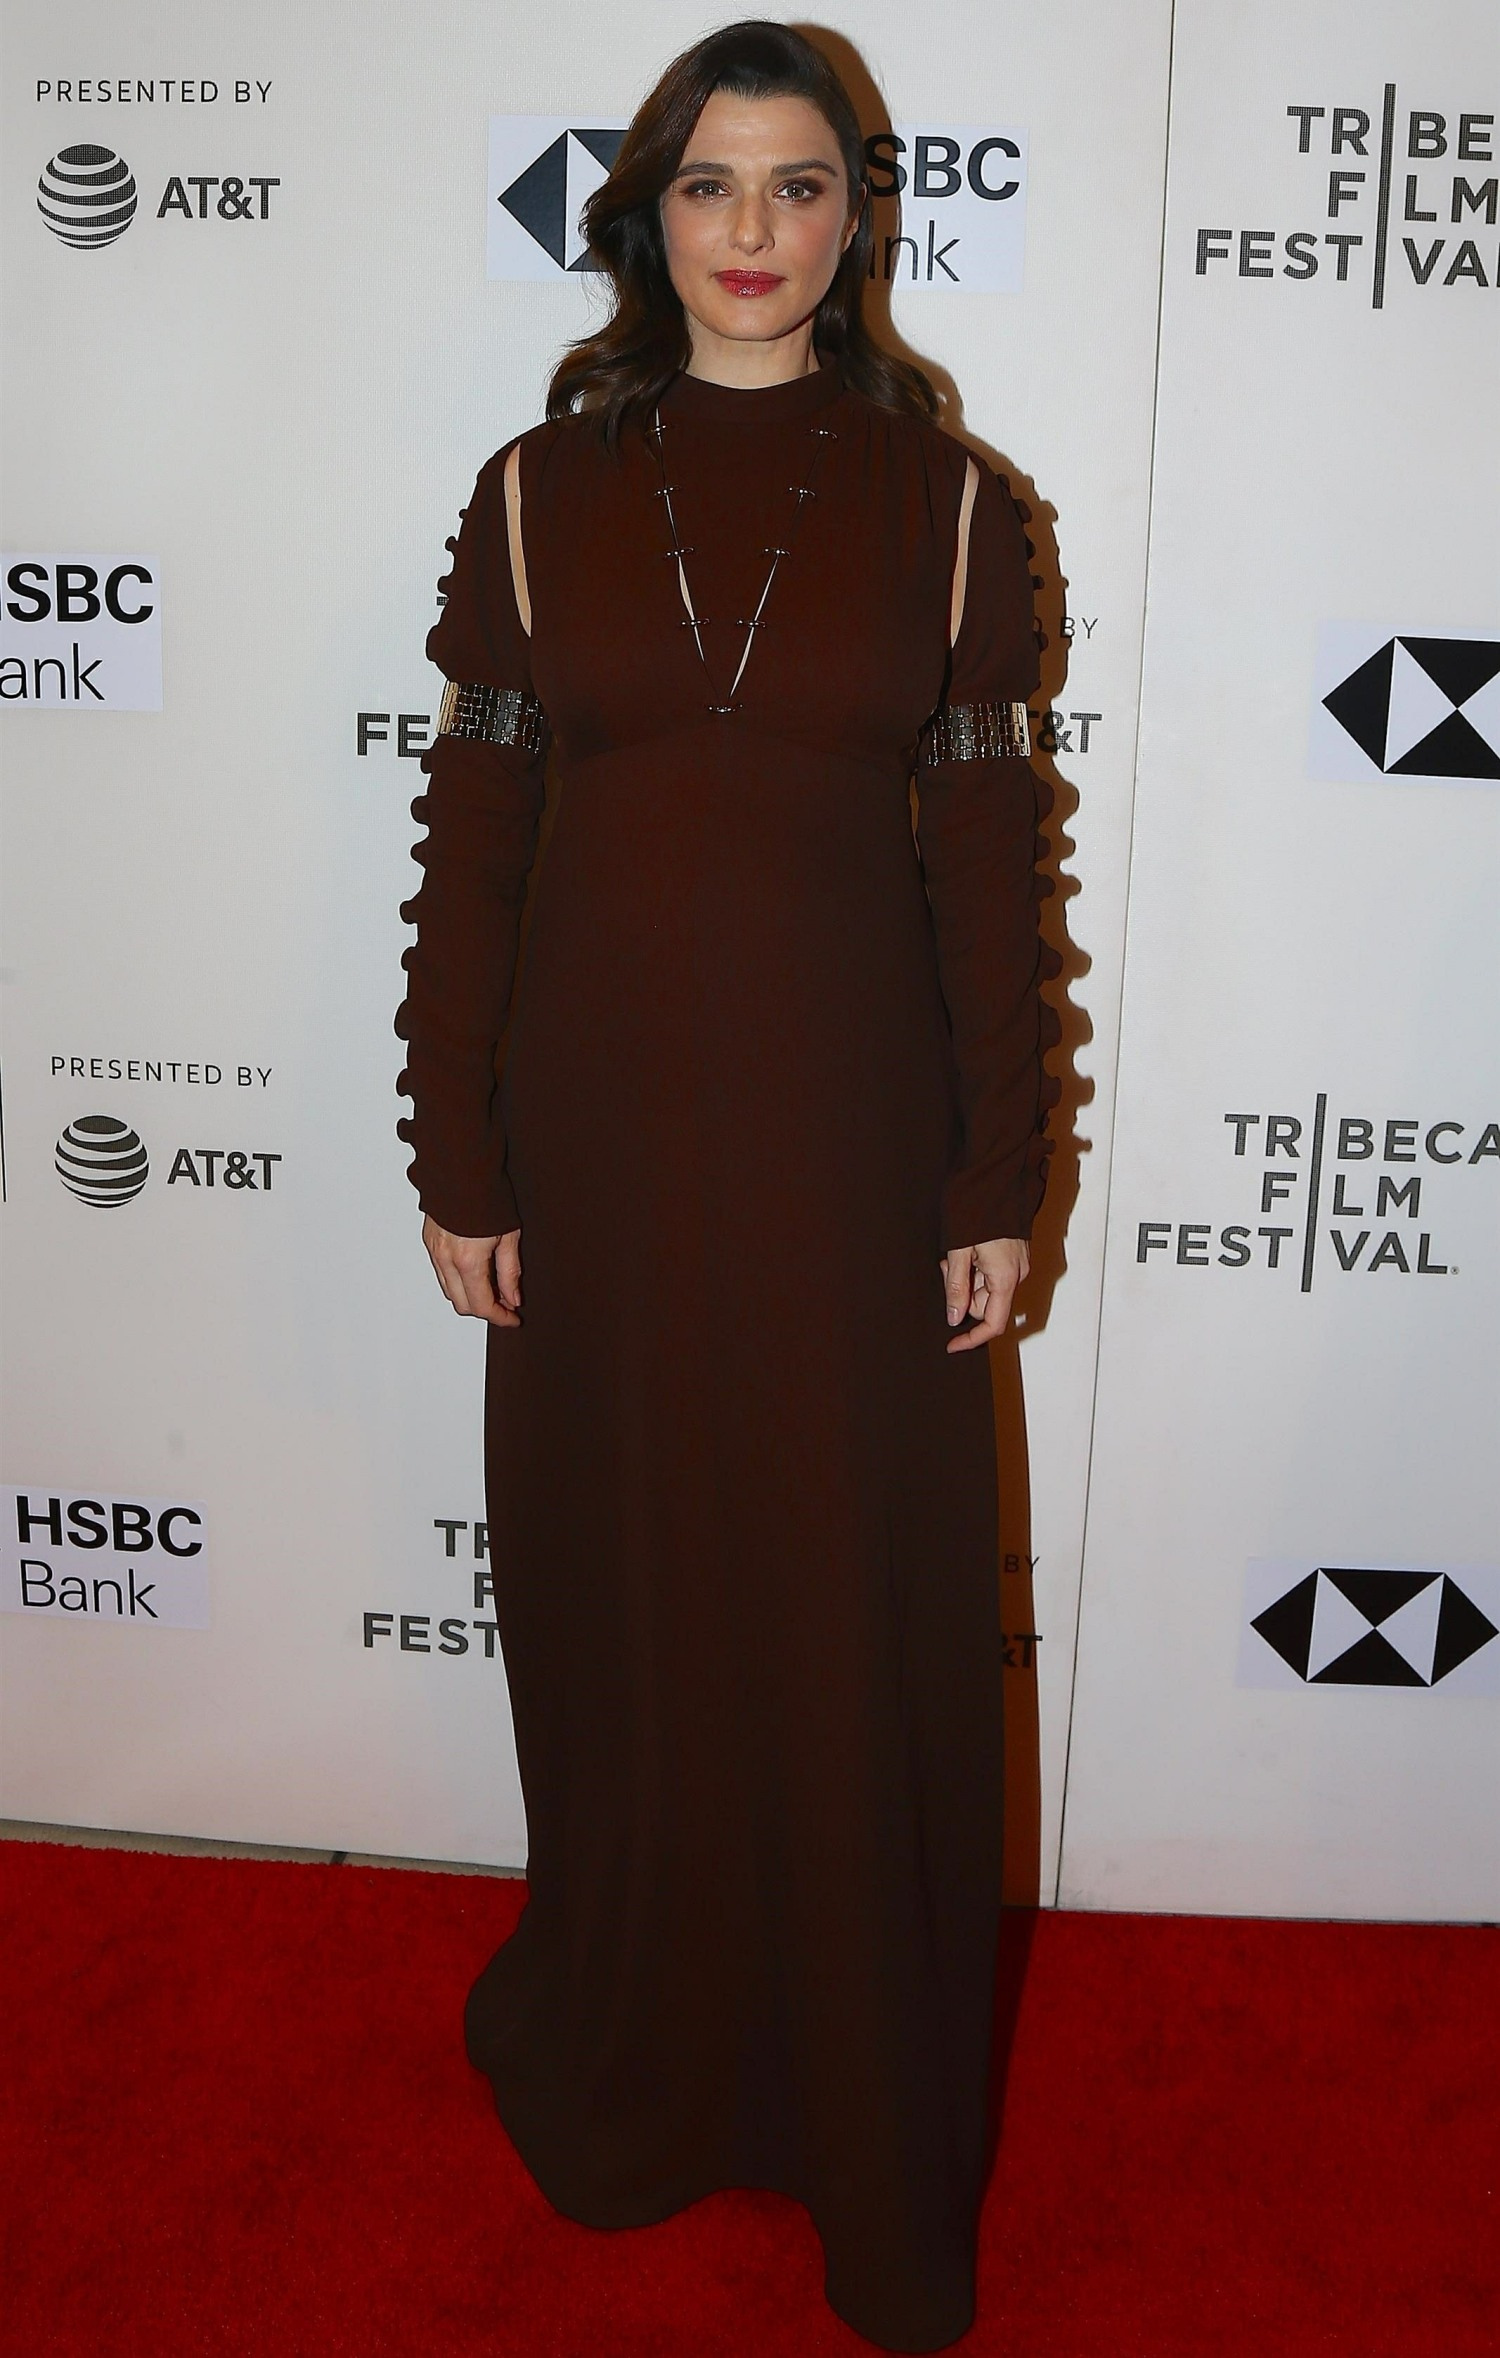 Rachel Weisz attends the 'Disobedience' premiere during the 2018 Tribeca Film Festival